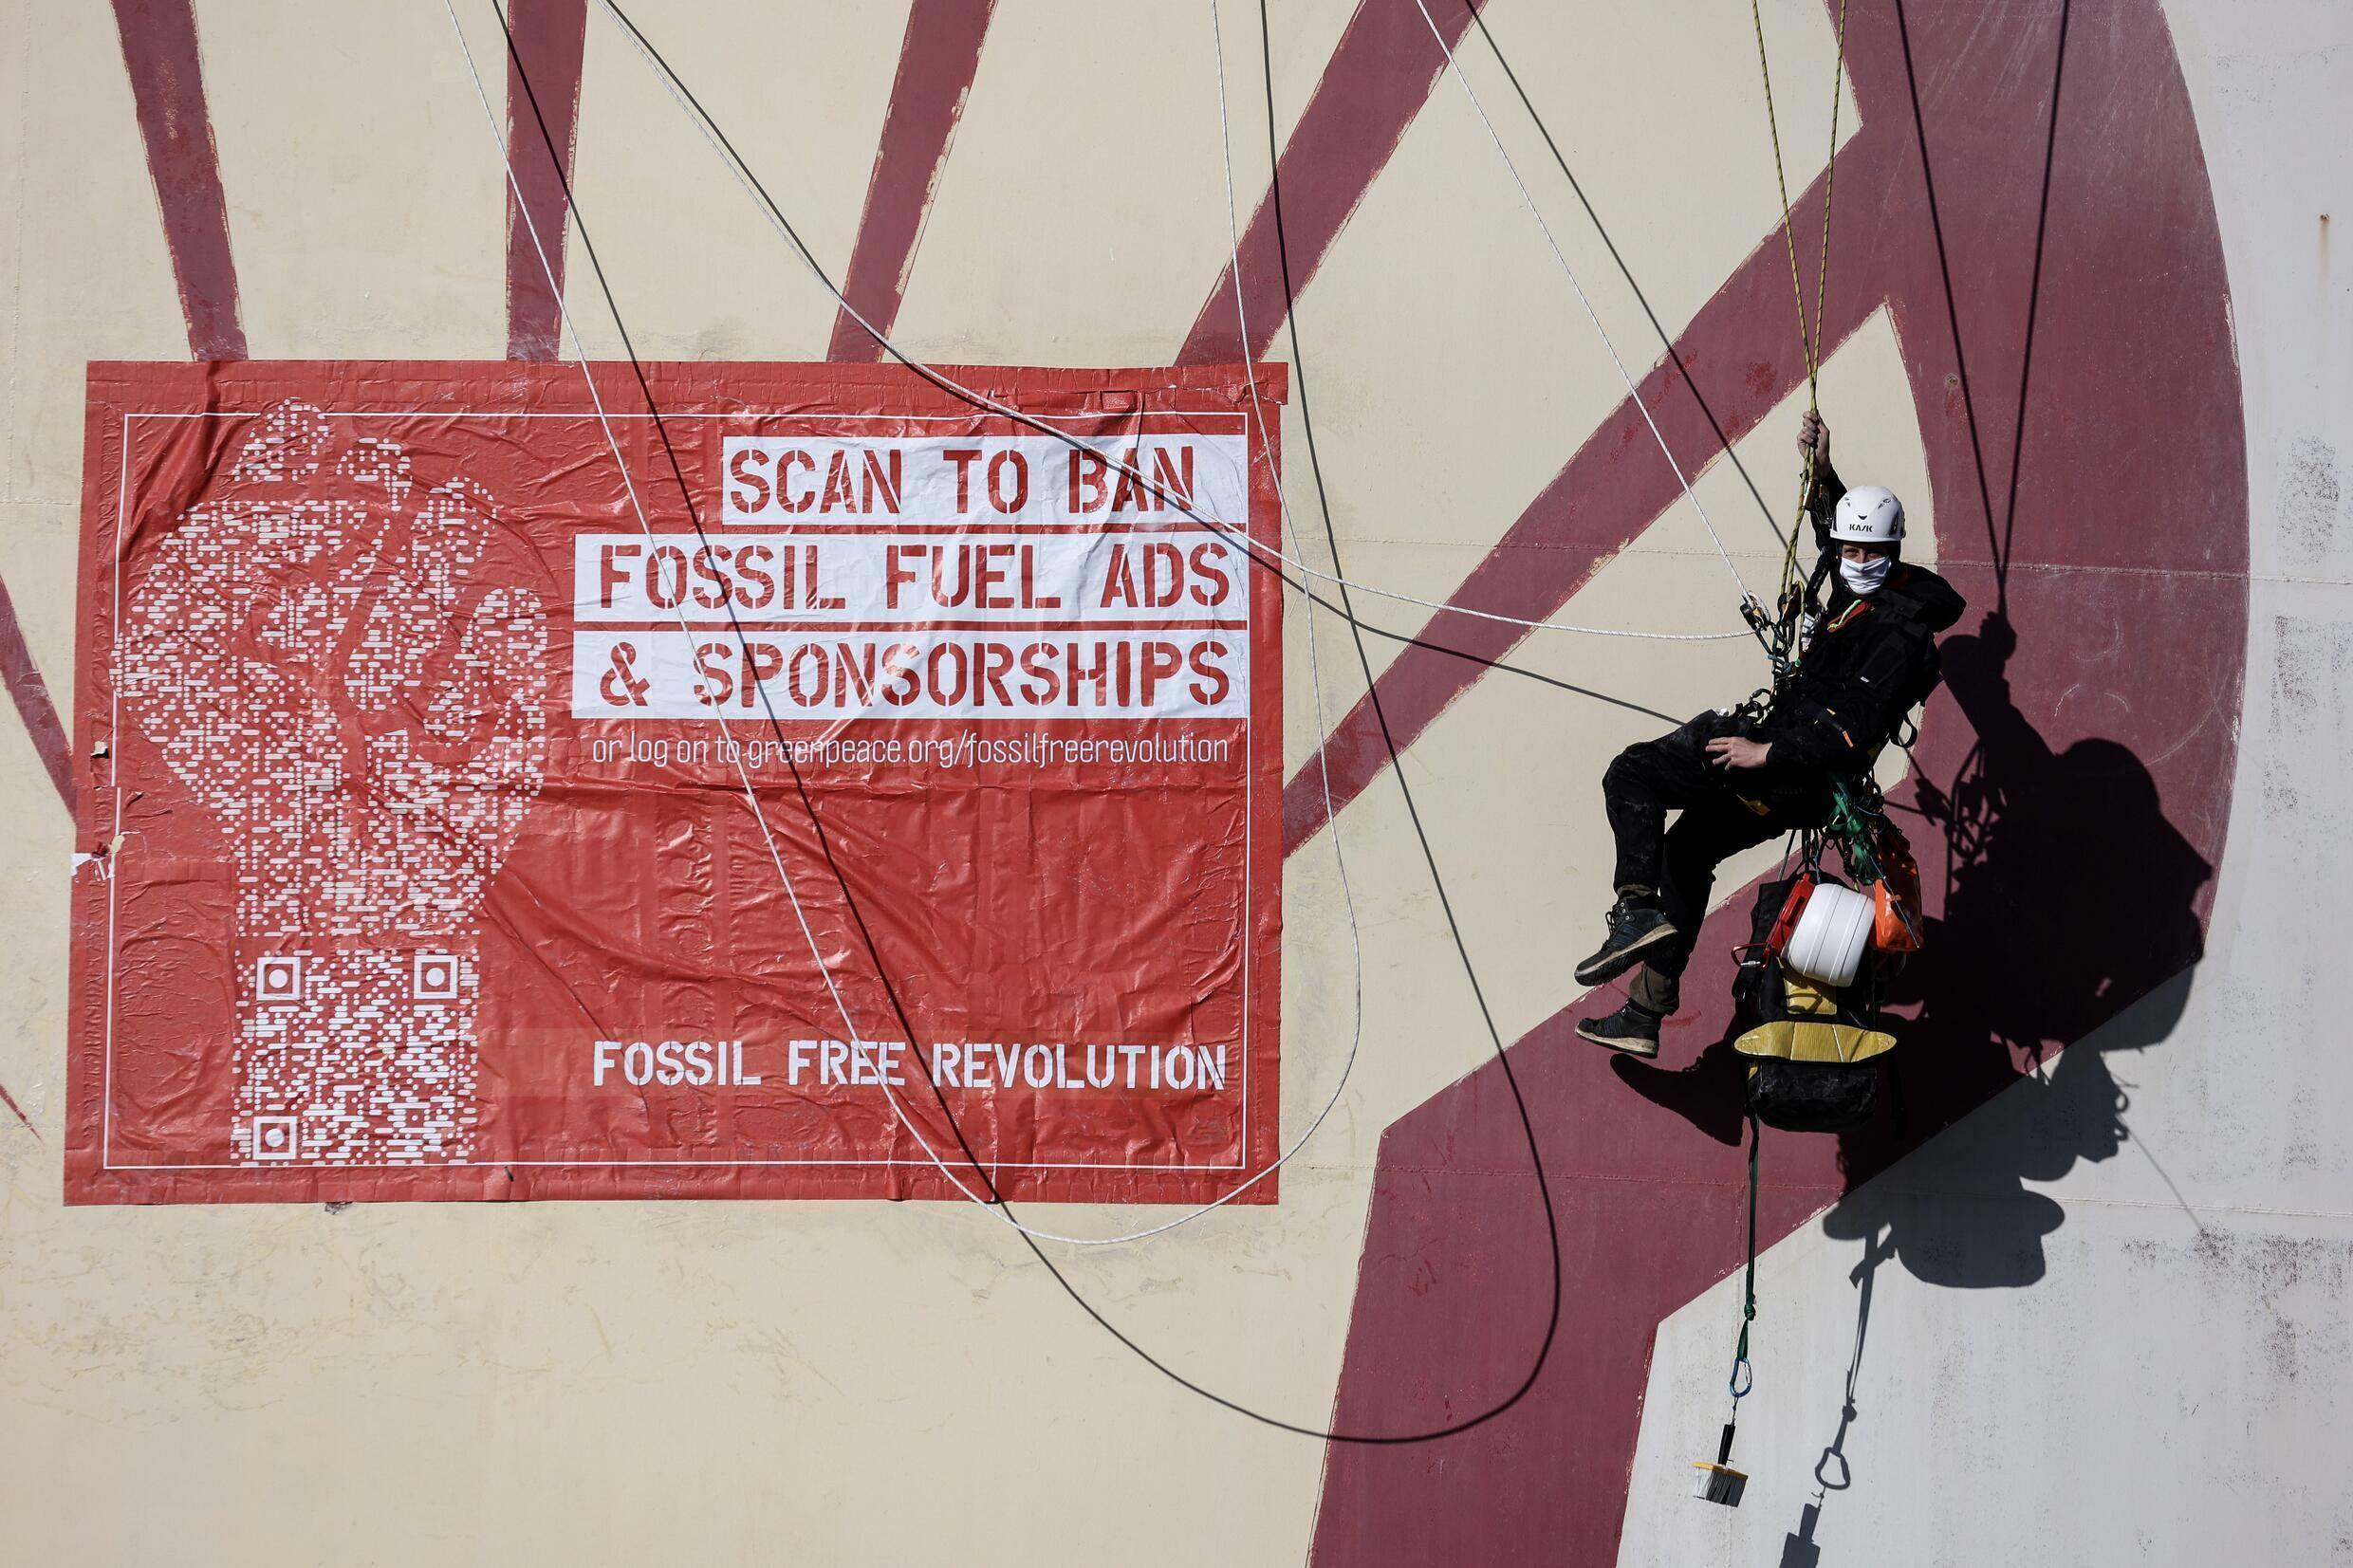 Greenpeace and 20 other groups have launched petition calling on EU to ban advertising and sponsorship by fossil fuel companies